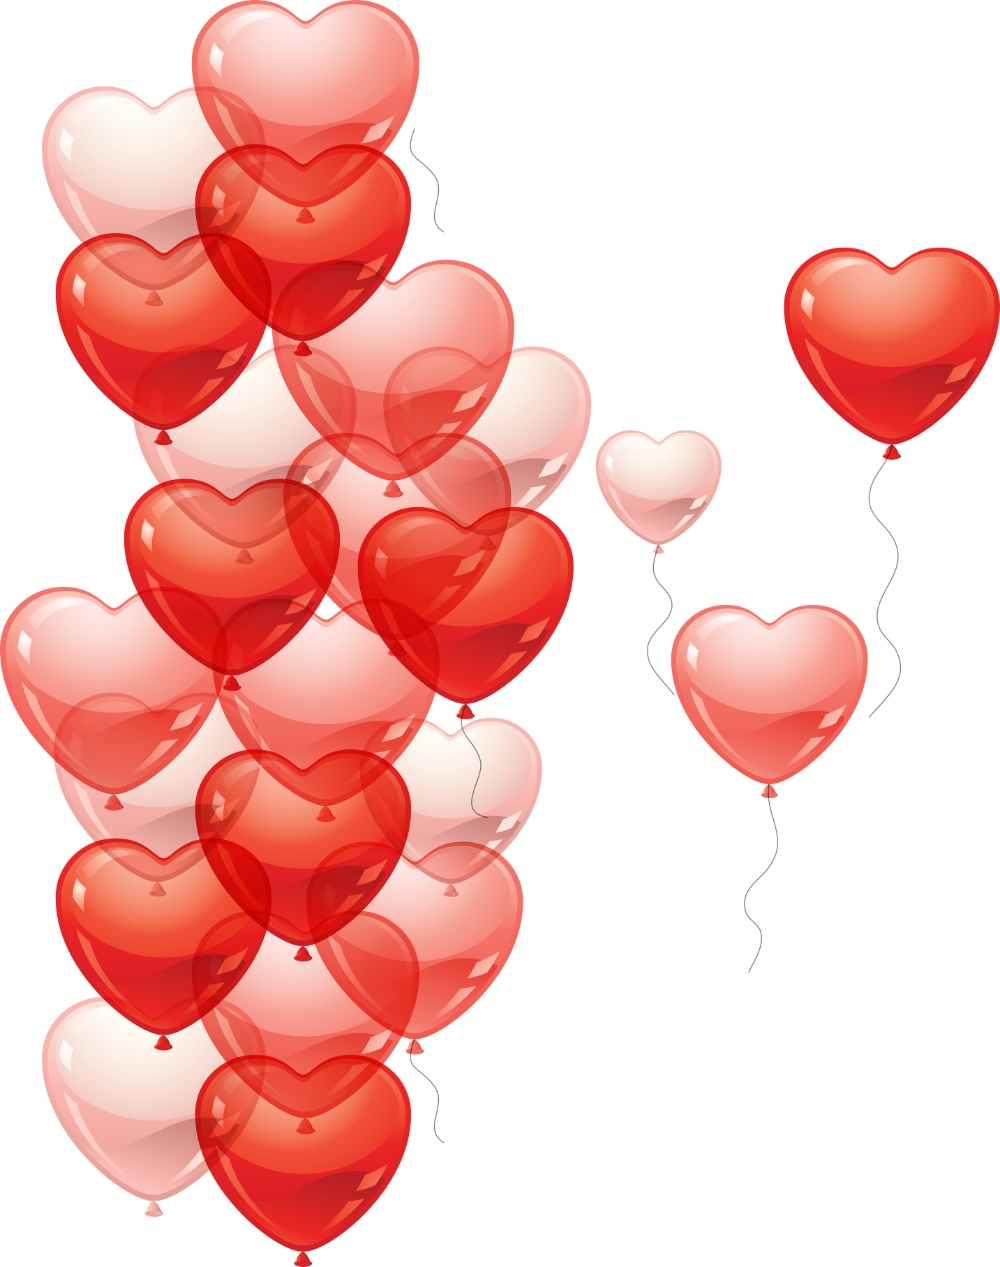 Balloon Png Images Free Picture Balloons Heart Balloons Love Valentines